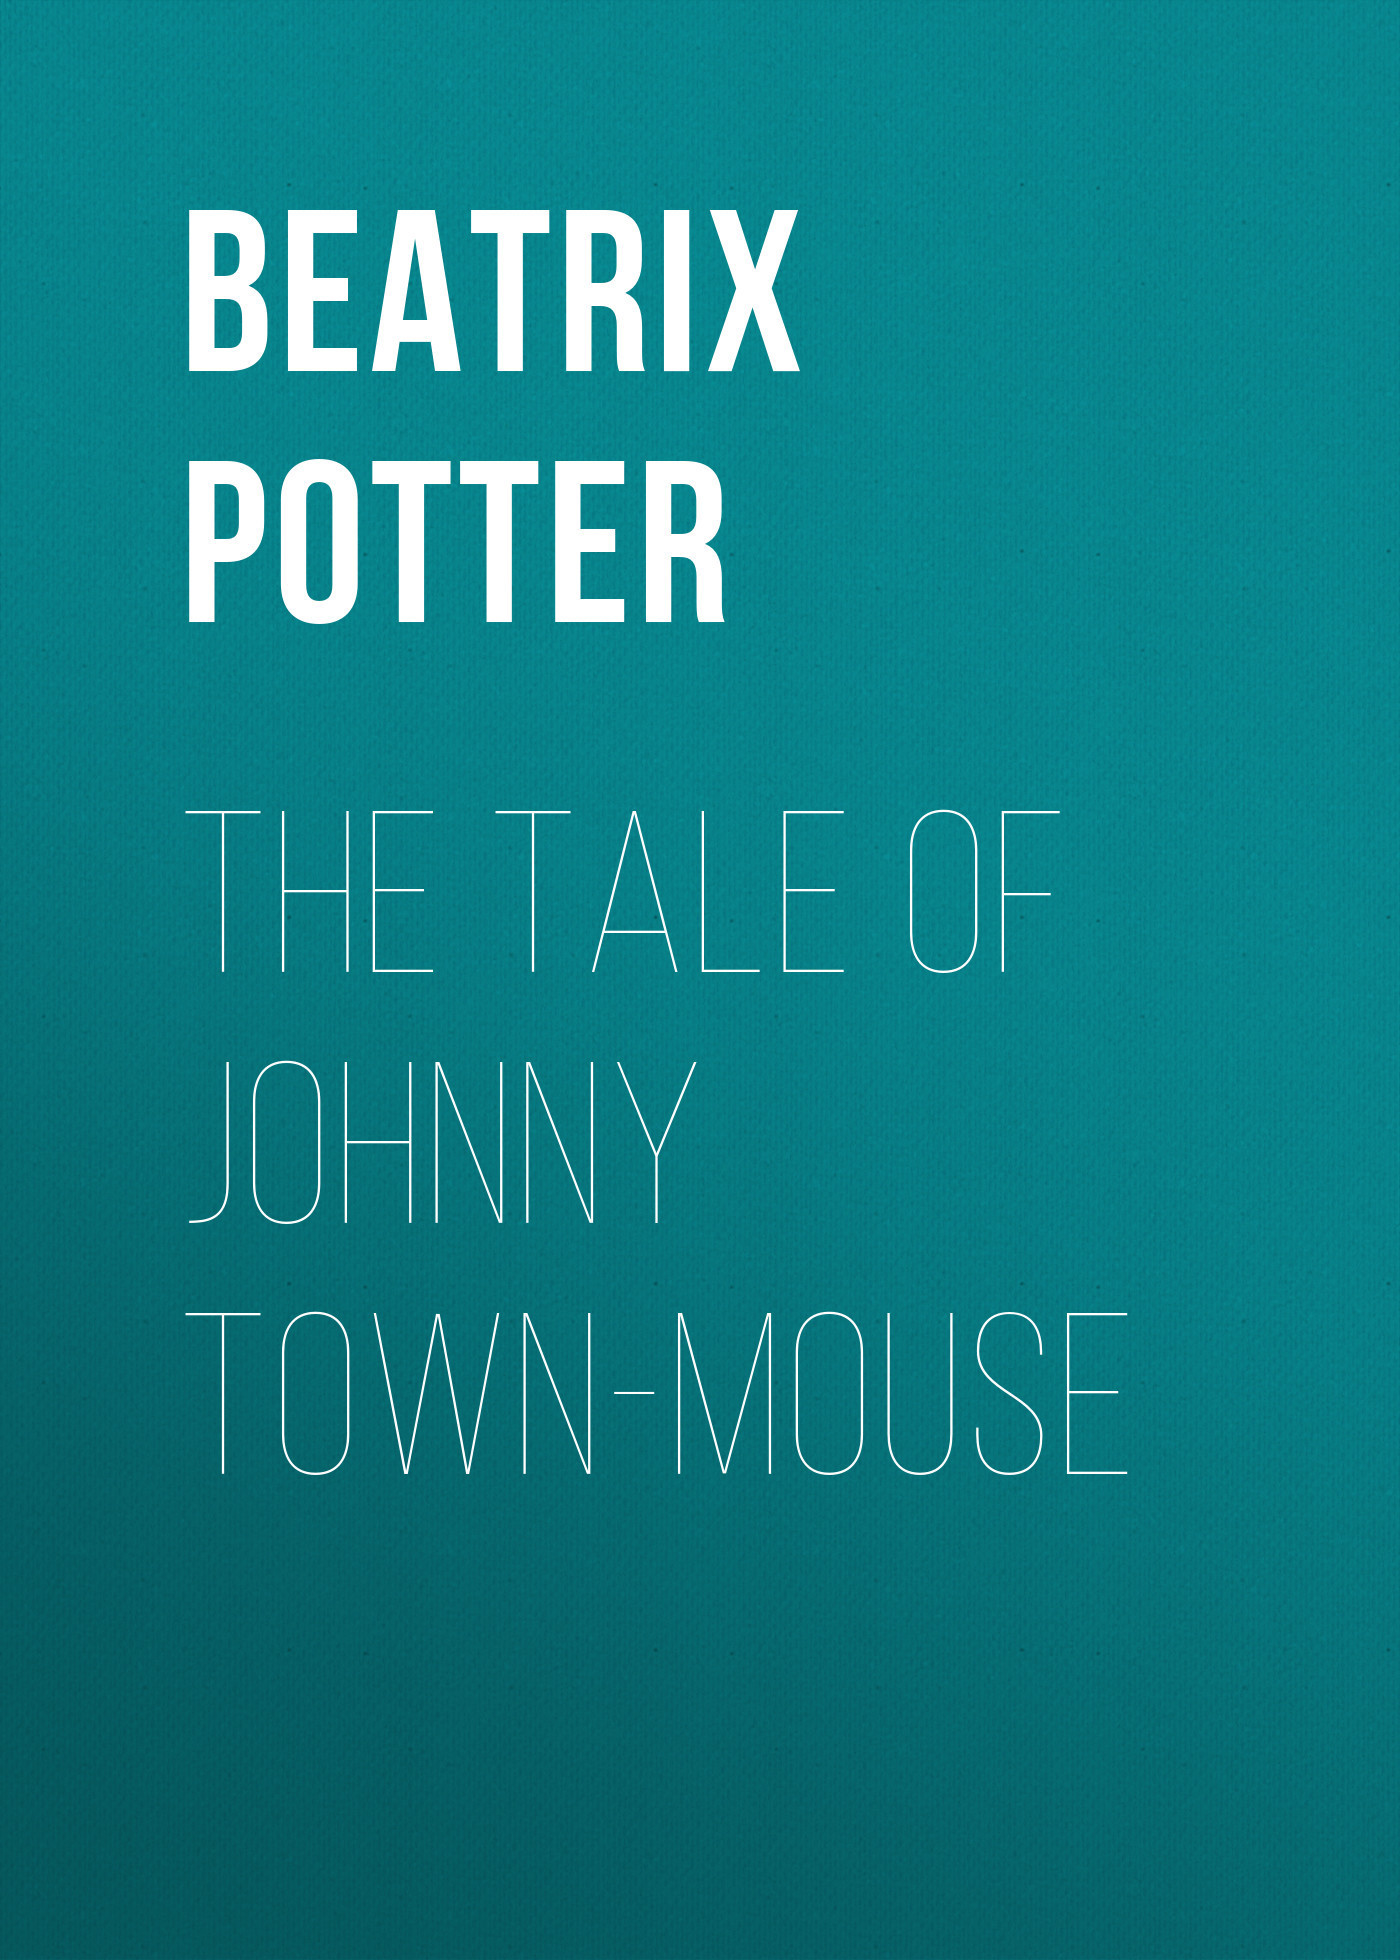 Беатрис Поттер The Tale of Johnny Town-Mouse